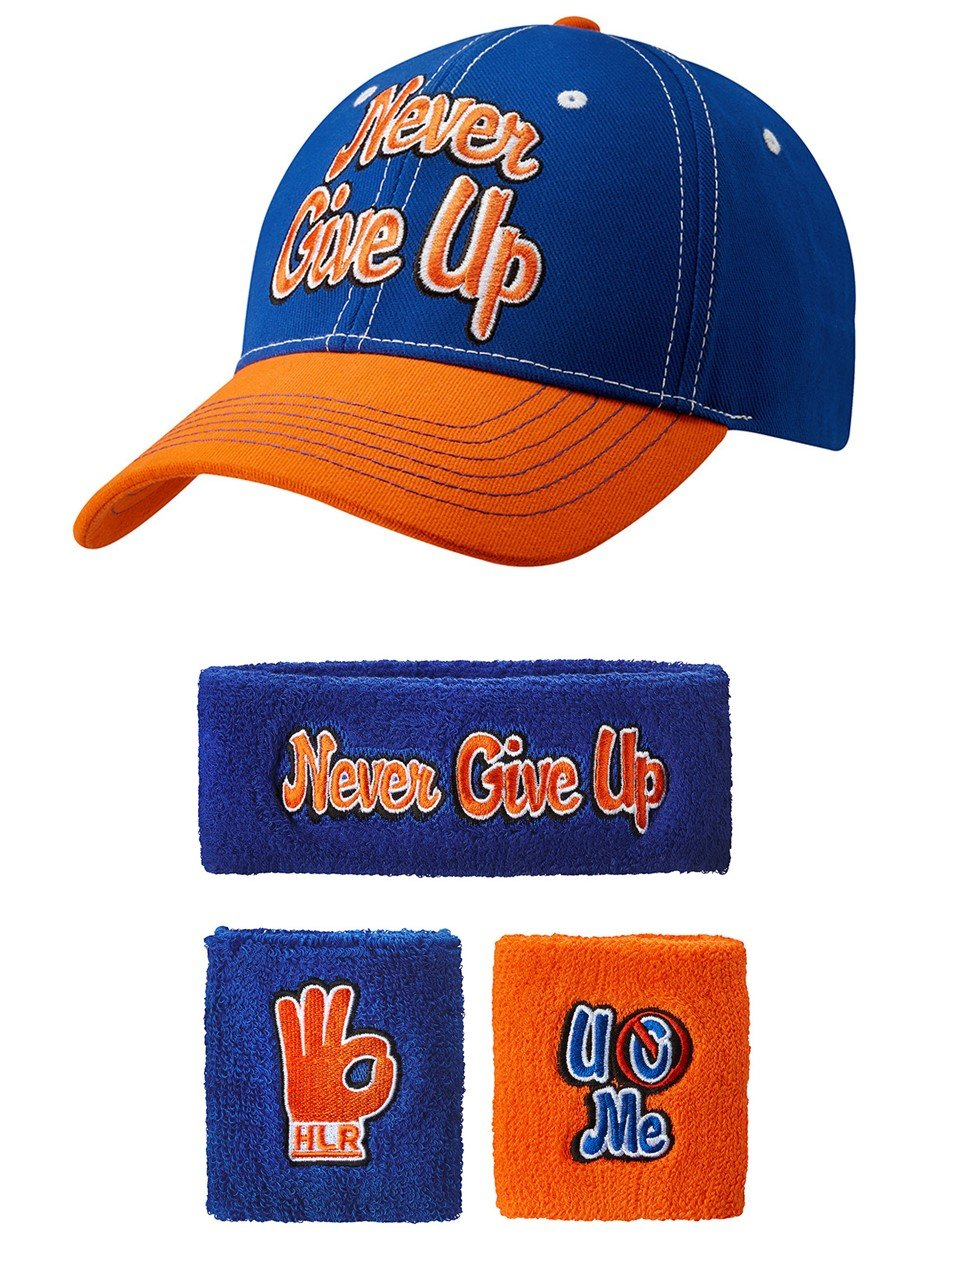 John Cena Respect Earn It Baseball Hat Headband Wristband Set by Freeze